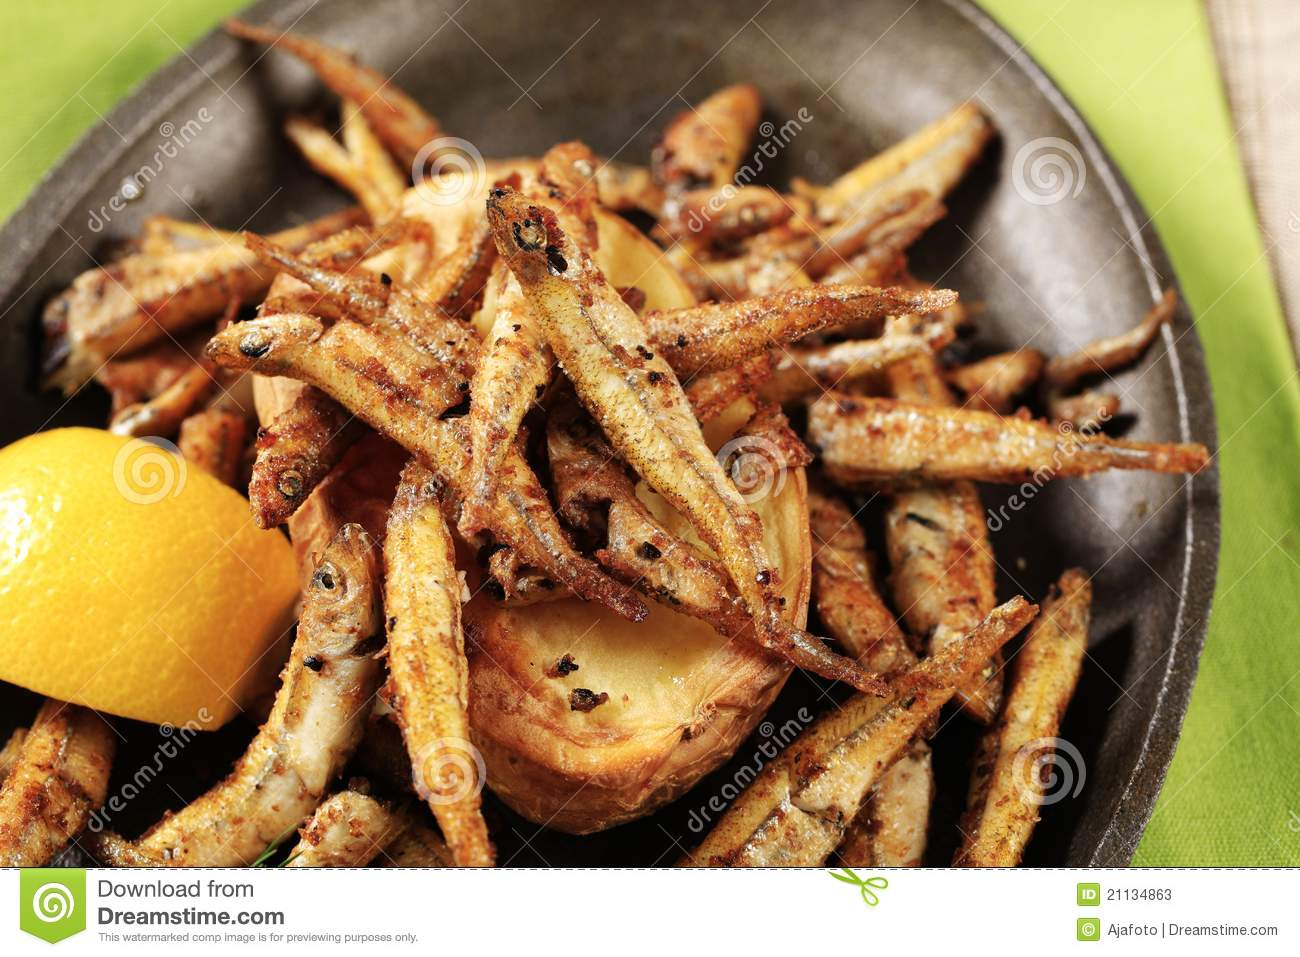 Fried Anchovies Stock Photos - Image: 21134863